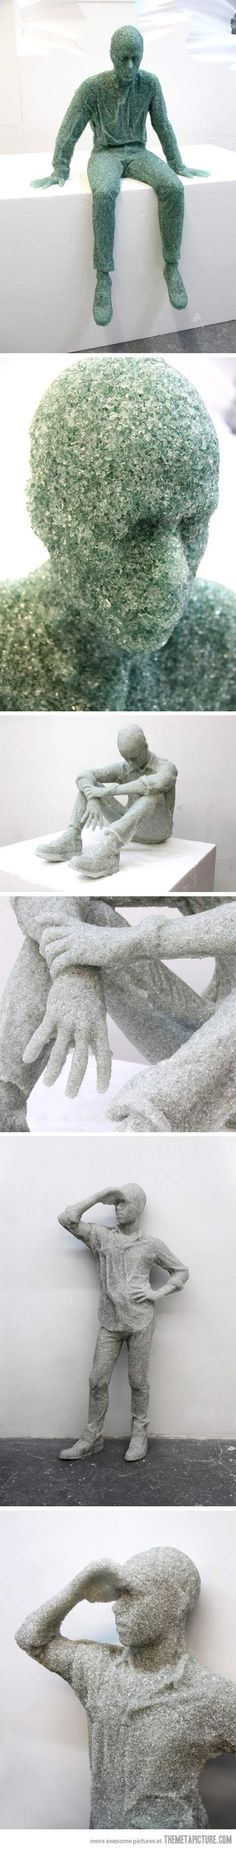 Shattered Glass Sculptures by Daniel Arsham…